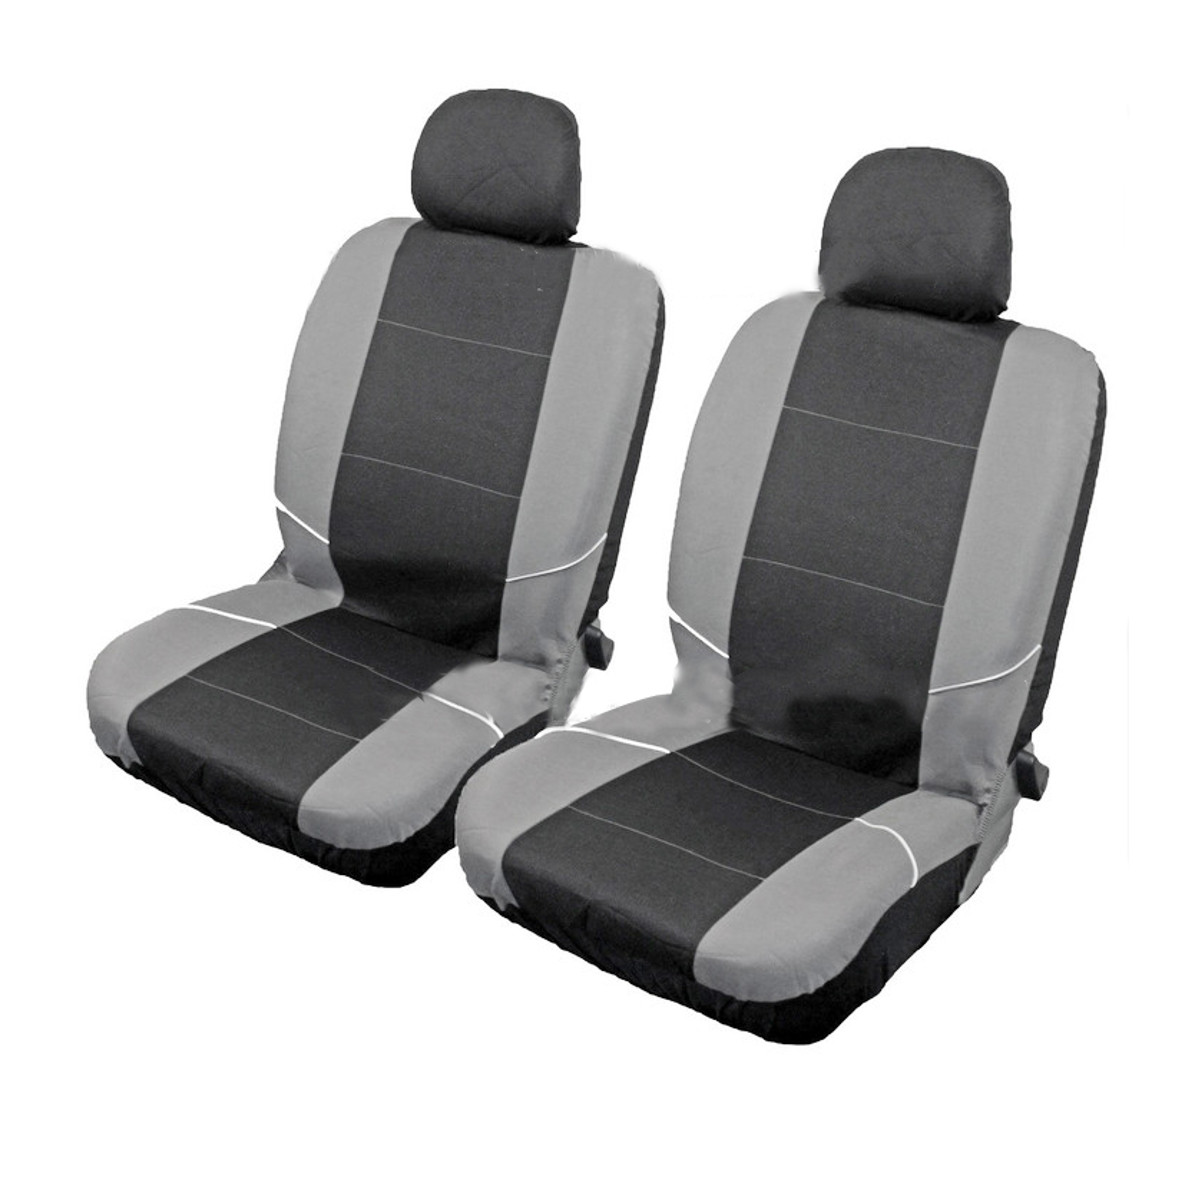 chair covers for headrest ergonomic rocking chairs universal front car seat and washable